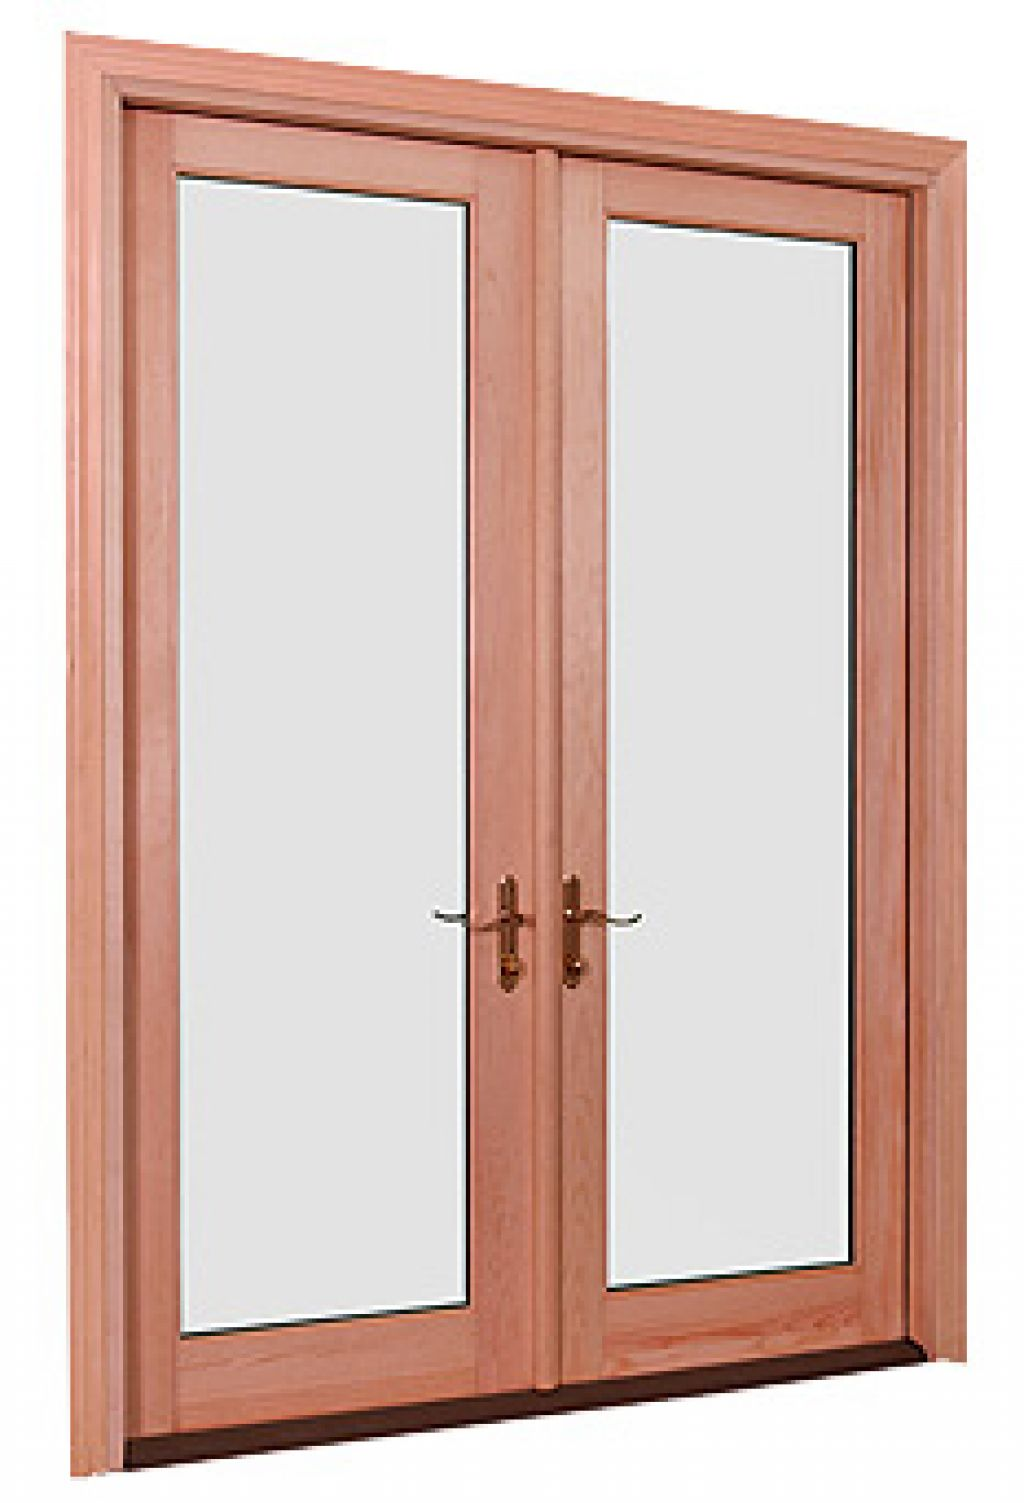 20 reasons to install french doors exterior andersen On andersen exterior french doors